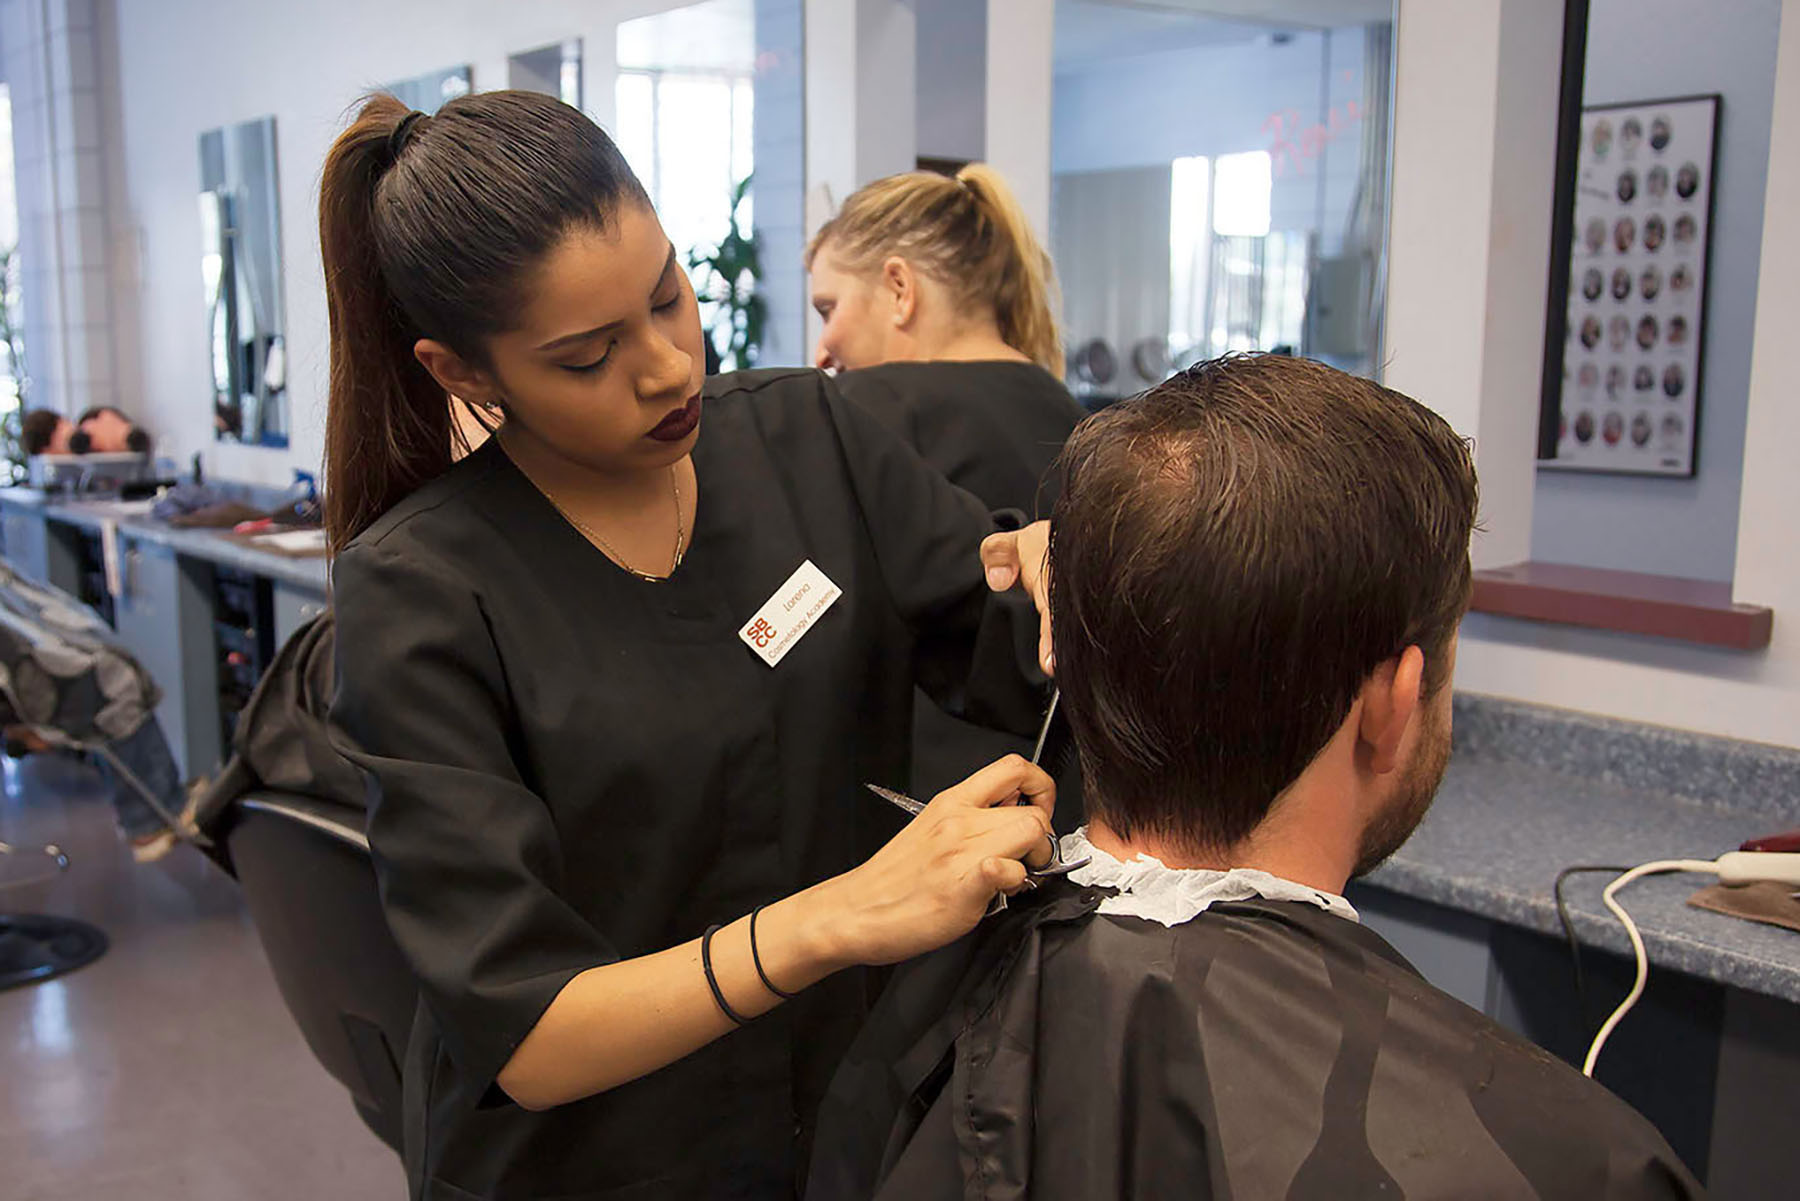 Lorena Almanza cuts a clients hair for $5 to raise money for the Surf Rider Foundation on Sunday, Oct. 2, at City College's Cosmetology Academy in Goleta. All proceeds went to the foundation to help protect the communities' coastal environment.